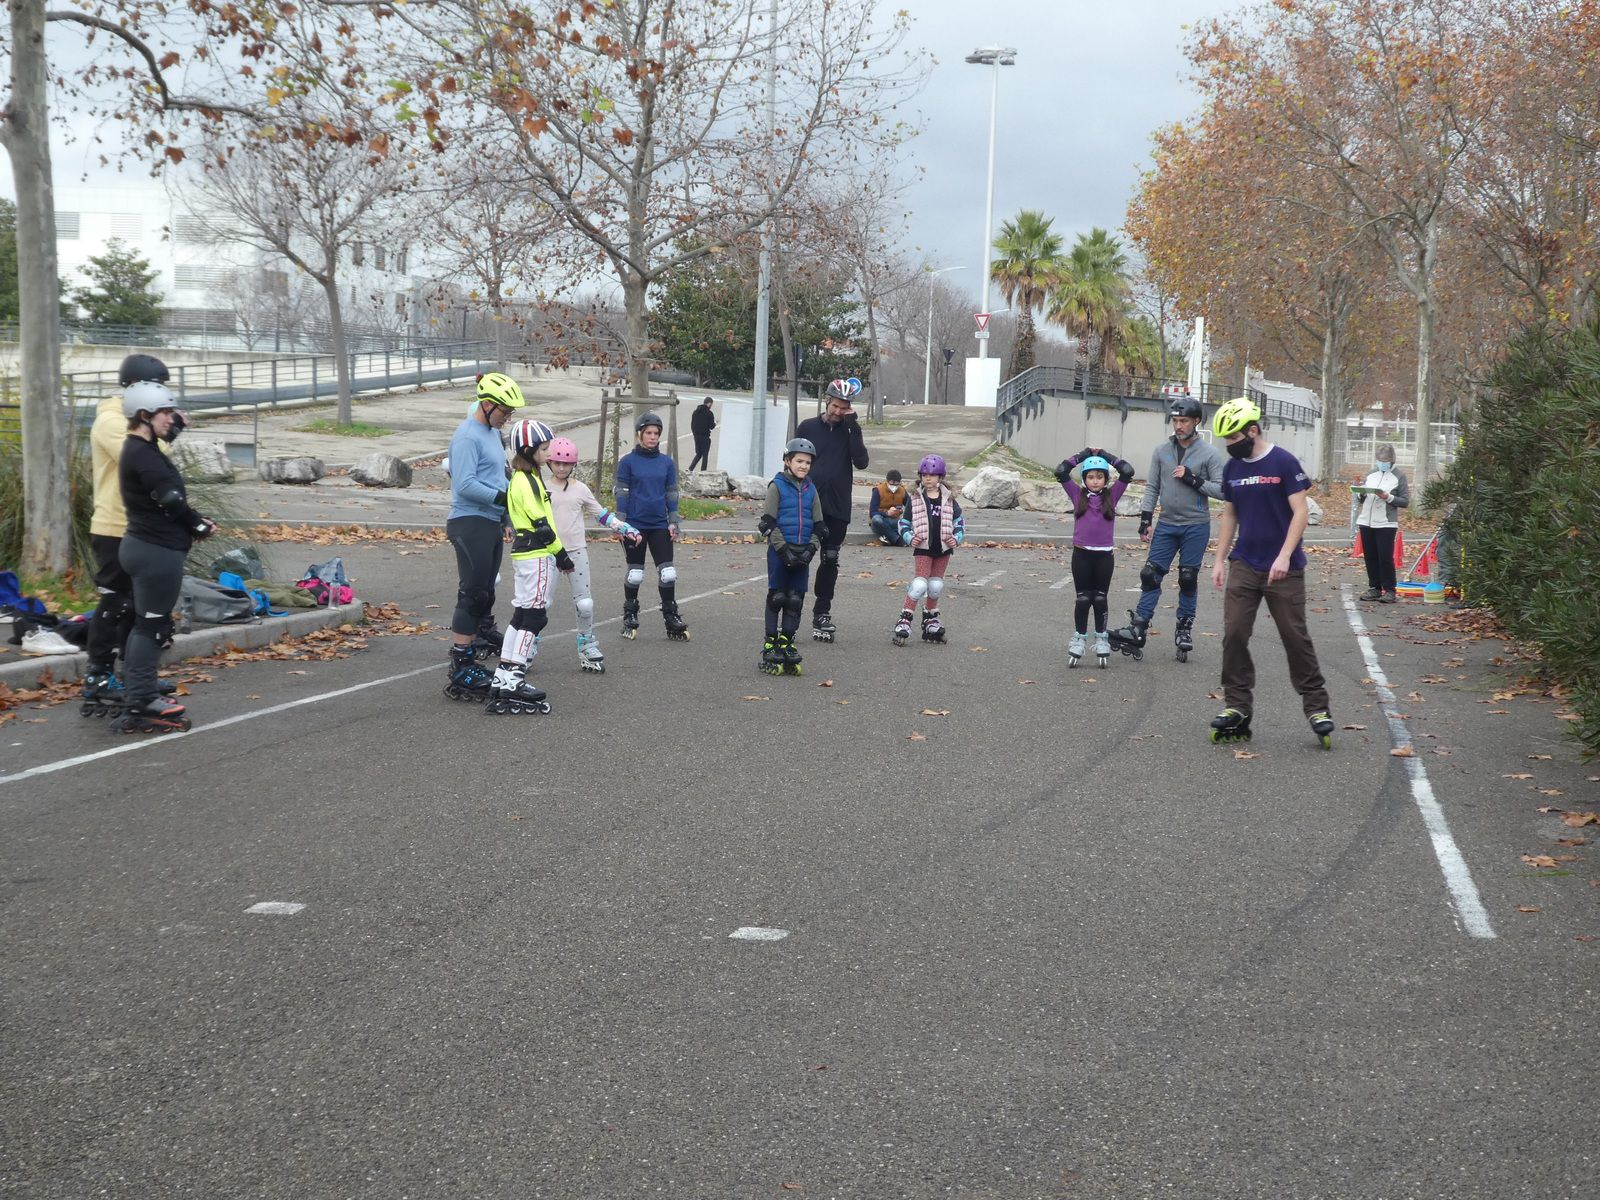 cours, roller, nimes, stage, vacances scolaires, sport, plein air